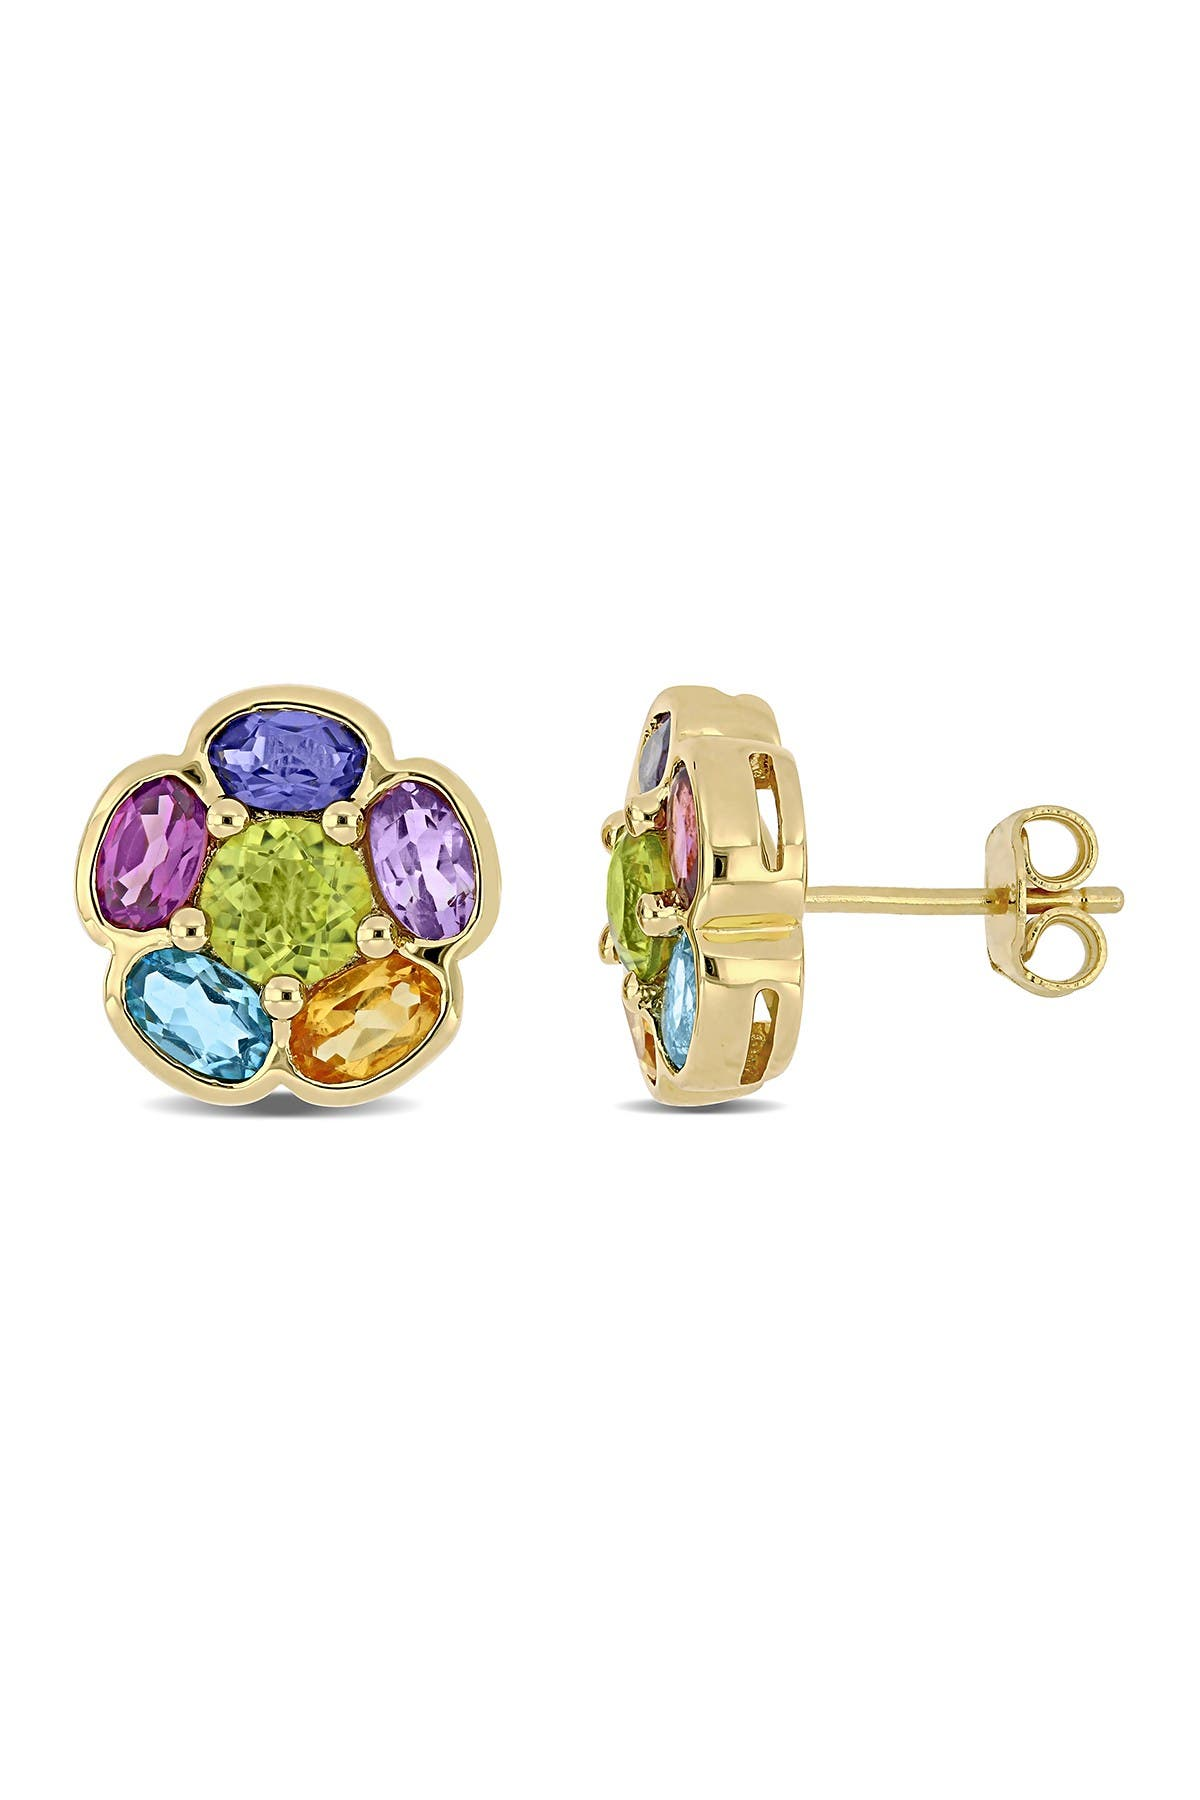 Image of Delmar 18K Yellow Gold Plated Sterling Silver Multi-Gemstone Floral Stud Earrings